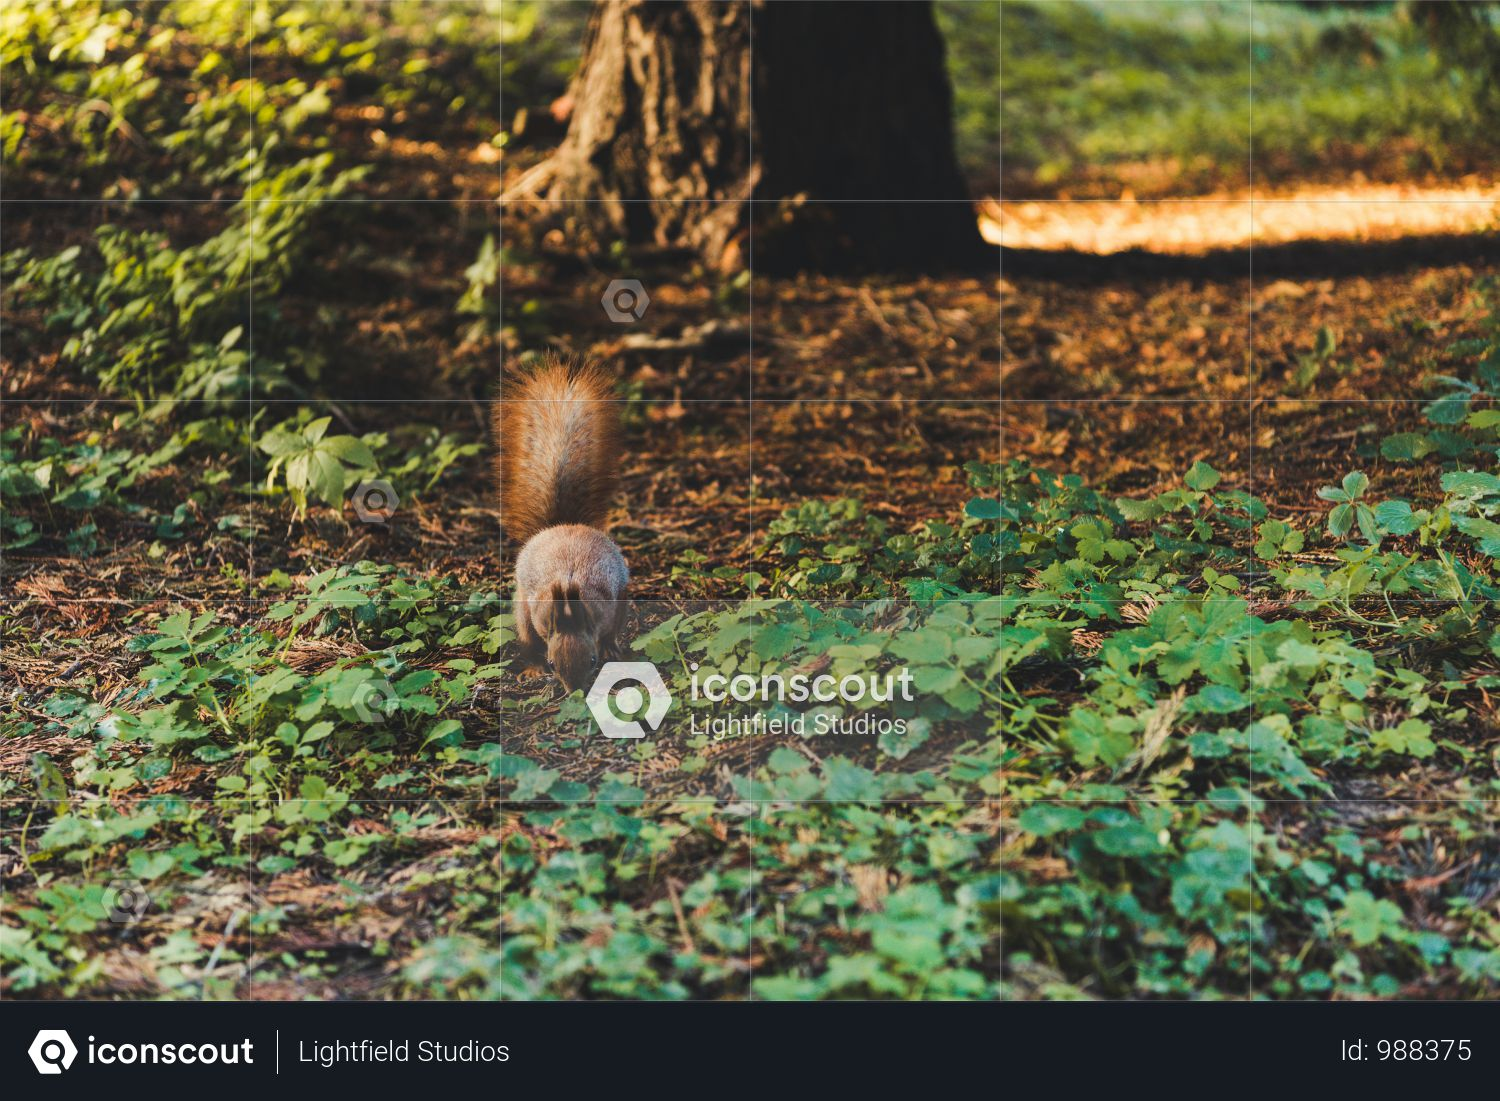 Furry Little Squirrel Running On Soil In Autumn Forest Photo